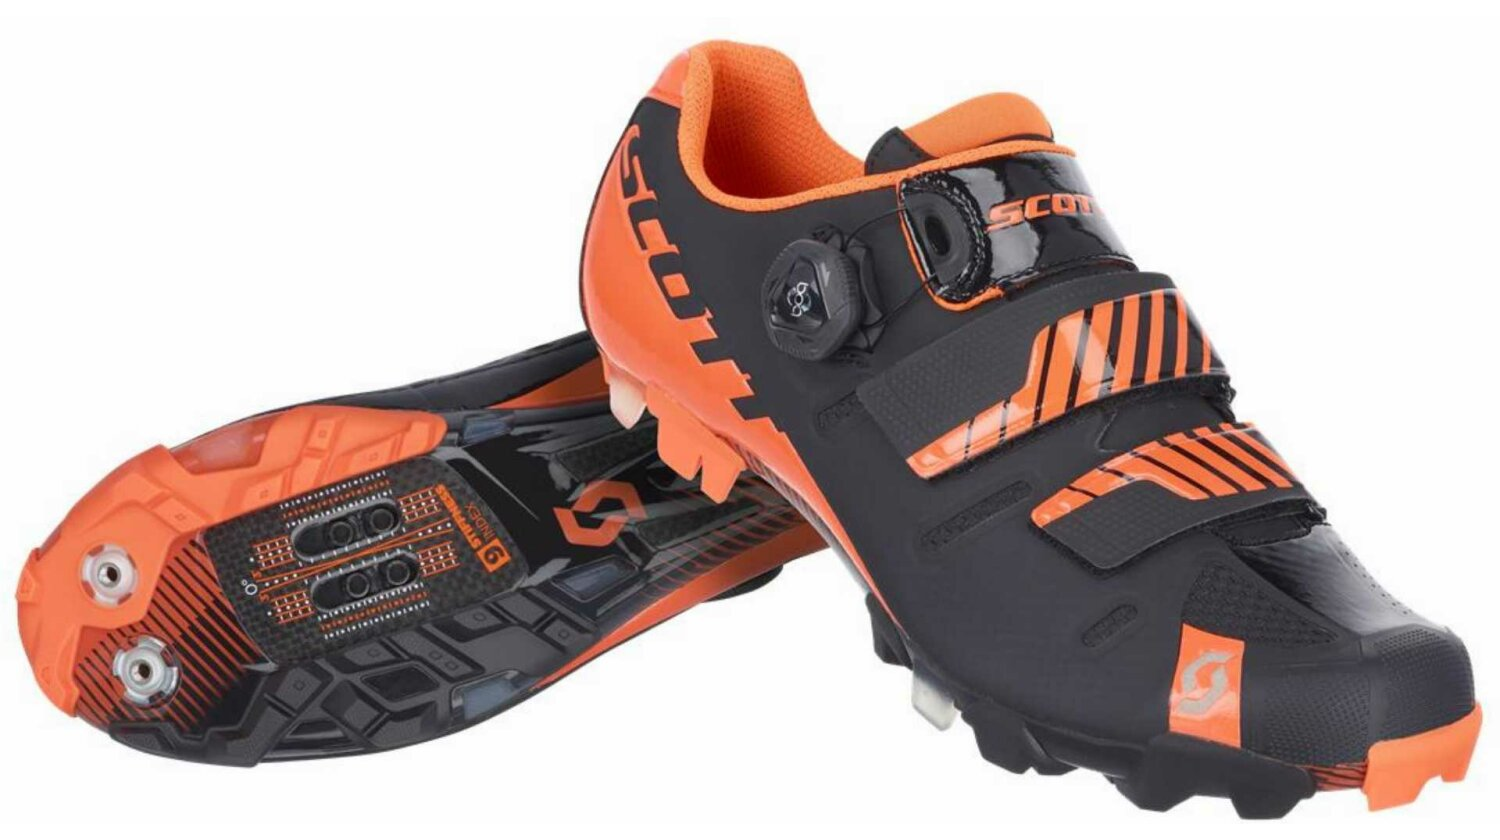 Scott MTB Premium Schuh black/neon orange gloss 39